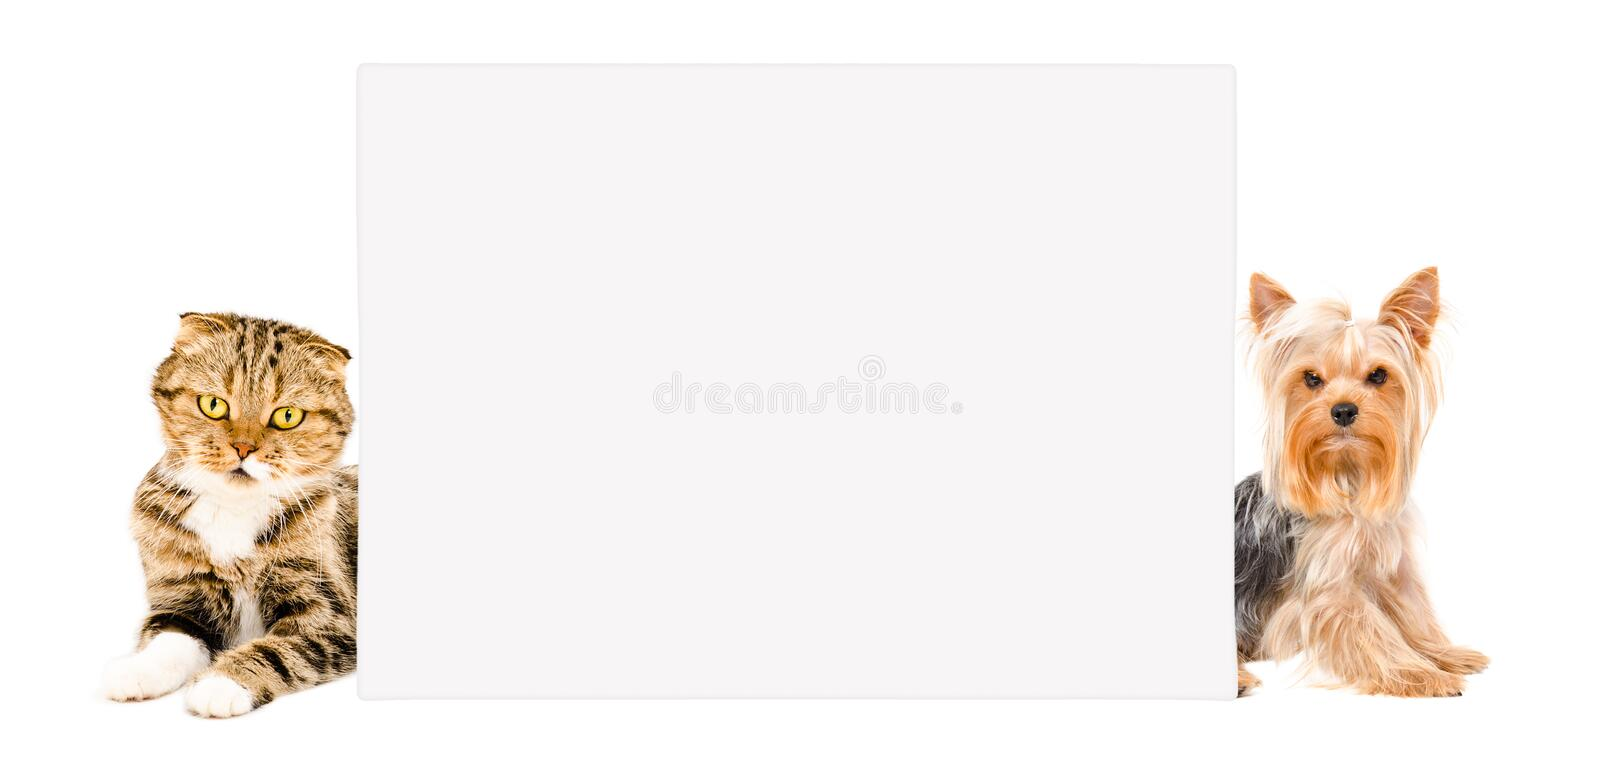 Cat Scottish Fold and Yorkshire terrier behind banner. Isolated on white background royalty free stock photo